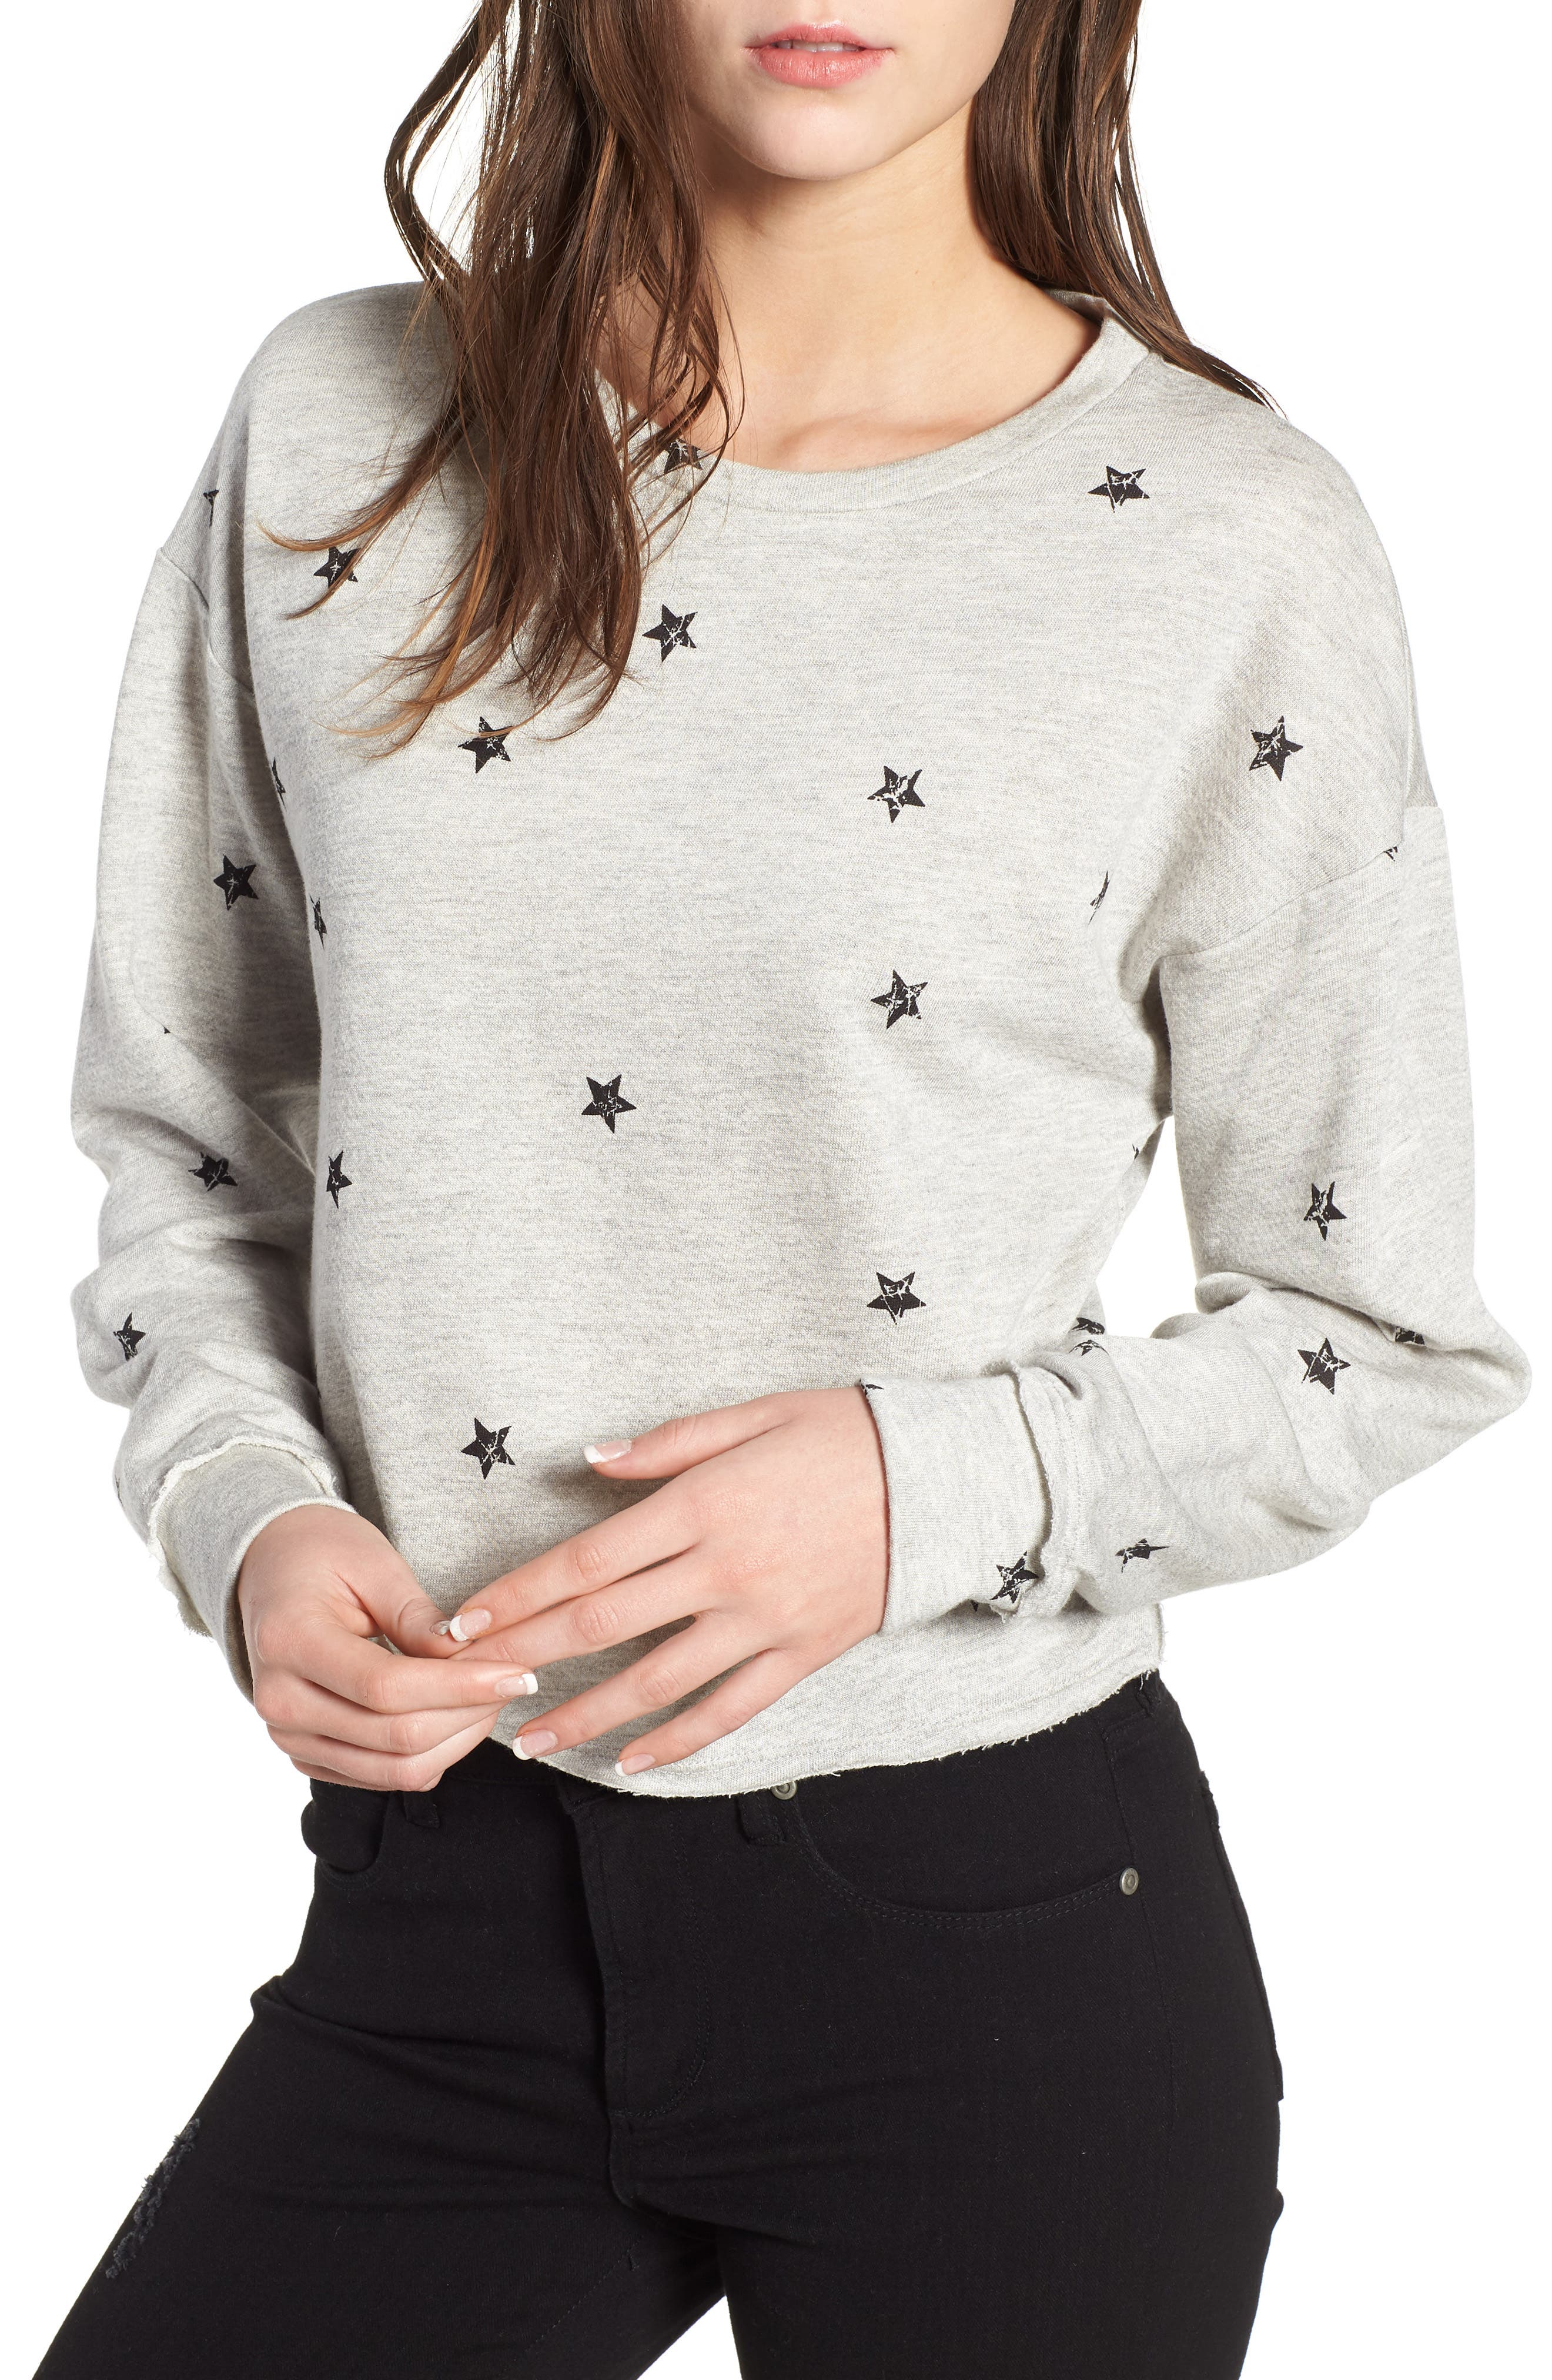 Star Print Sweatshirt,                             Main thumbnail 1, color,                             035